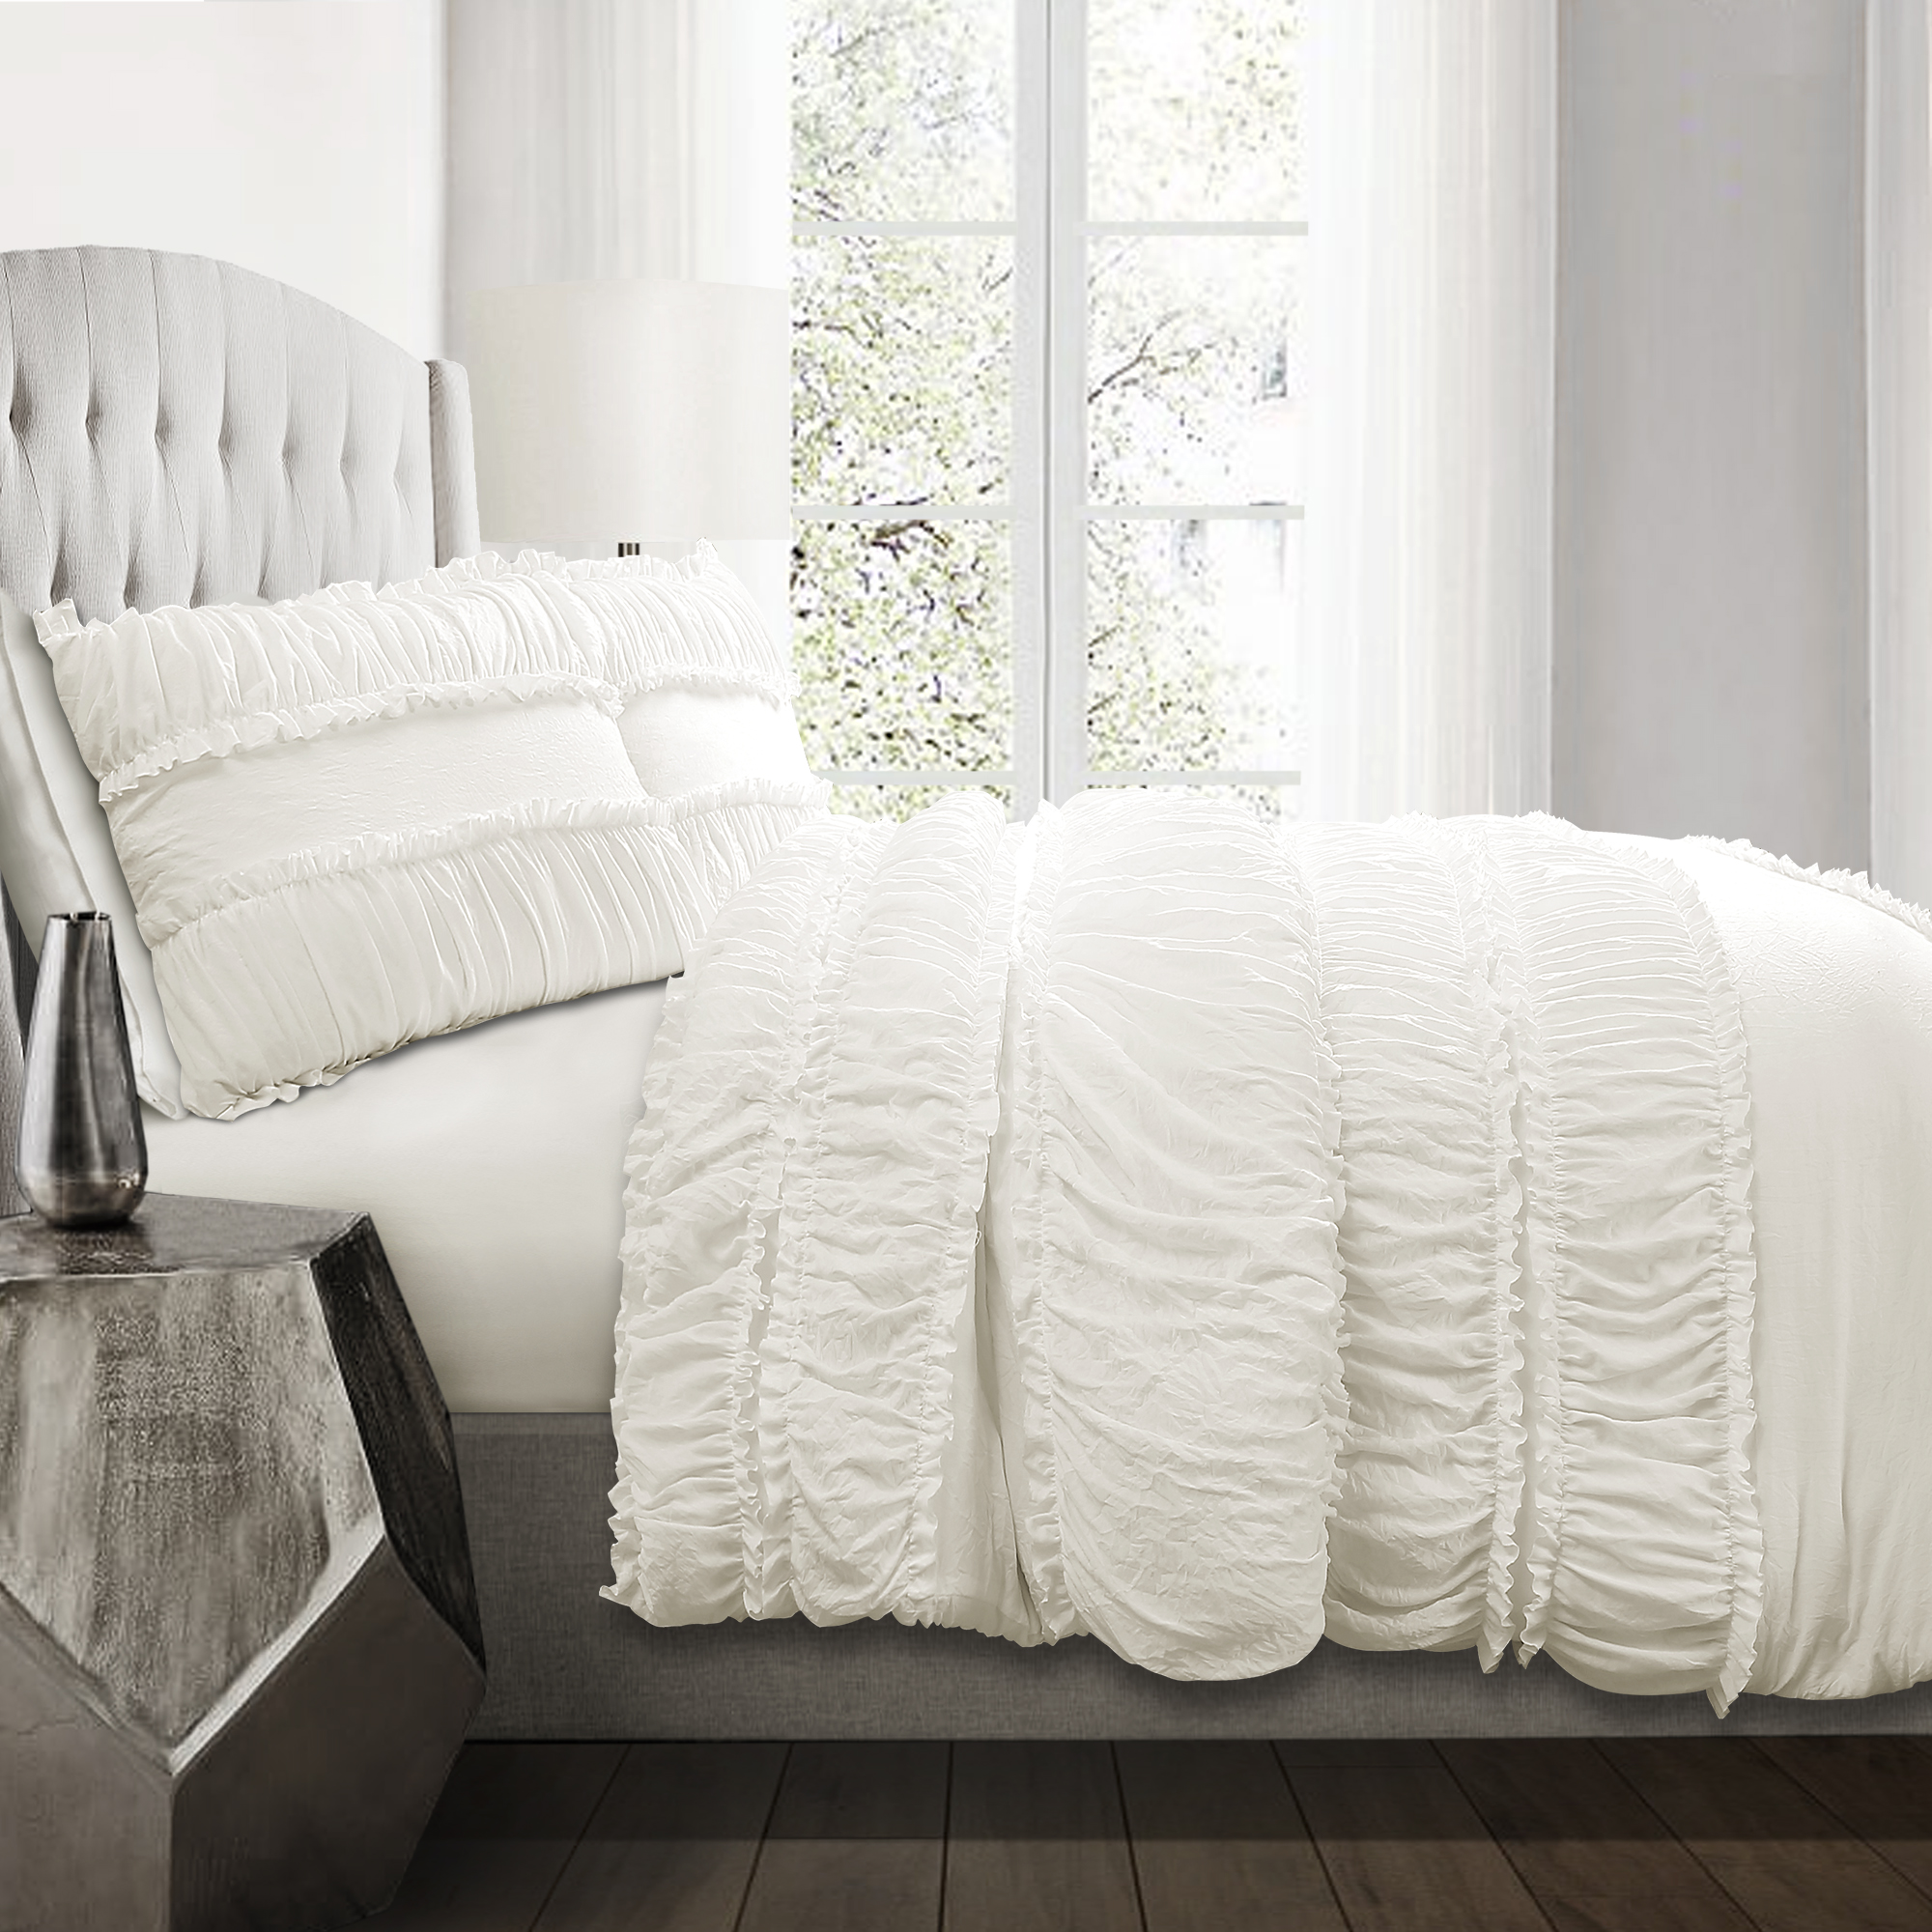 Nova Ruffle Comforter White 3Pc Set King